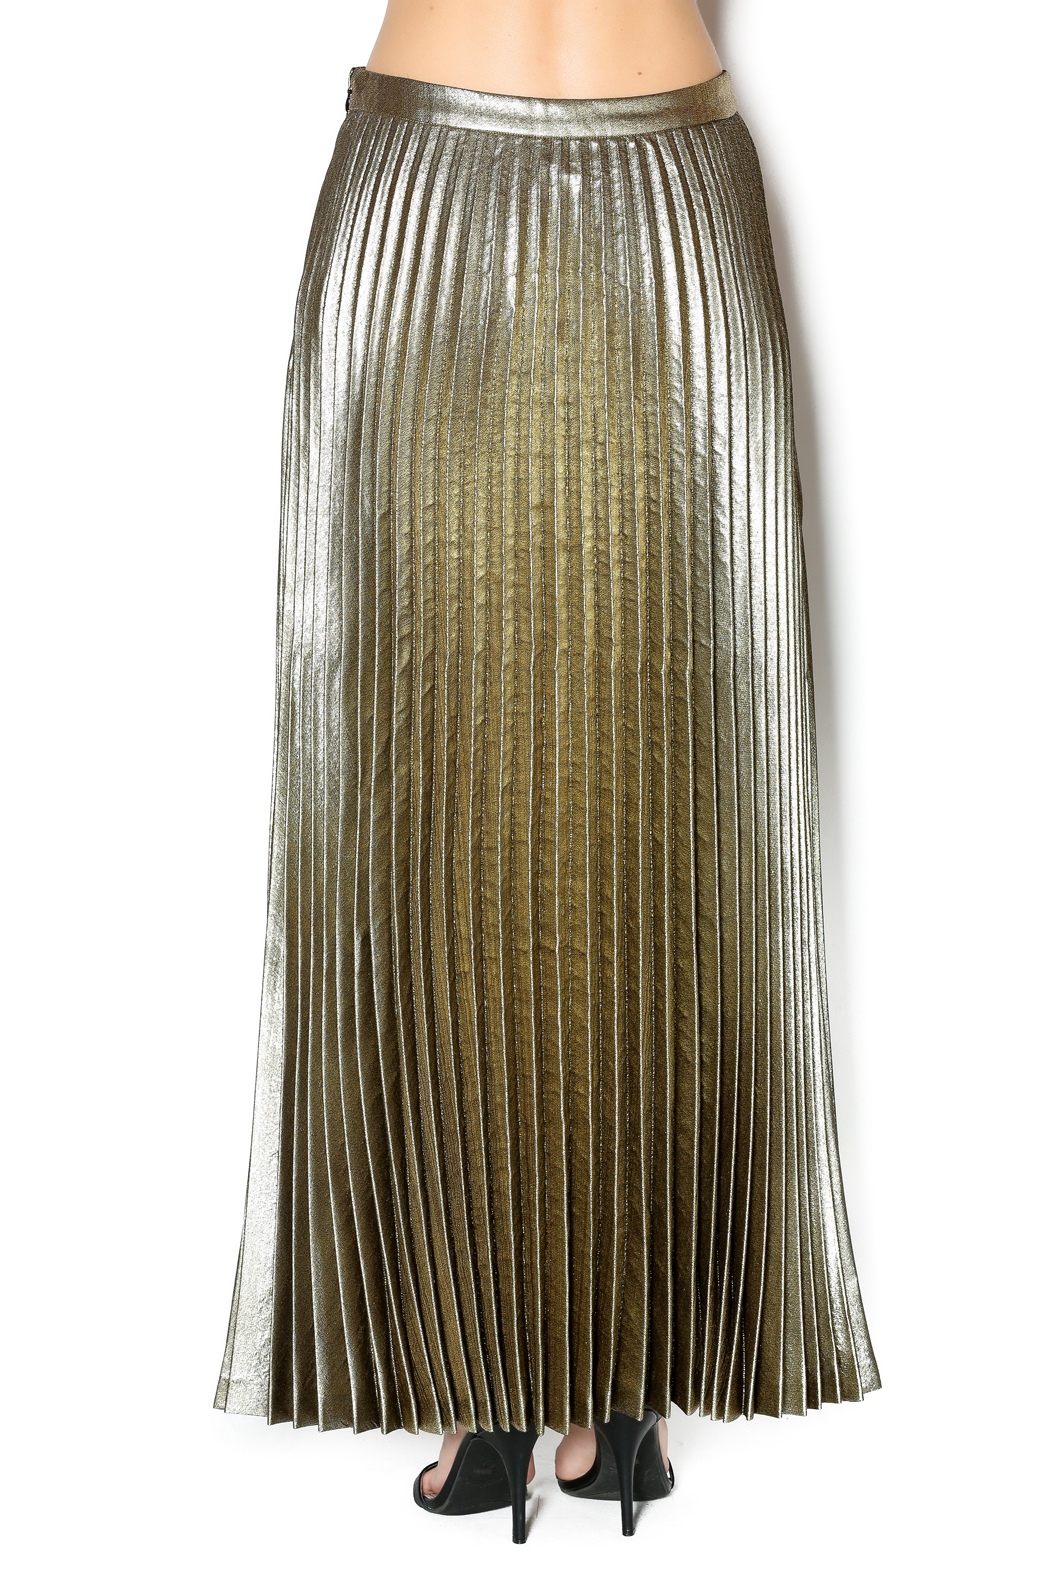 SILIVAN HEACH Gold Pleated Maxi Skirt from Germantown by On a Whim ...